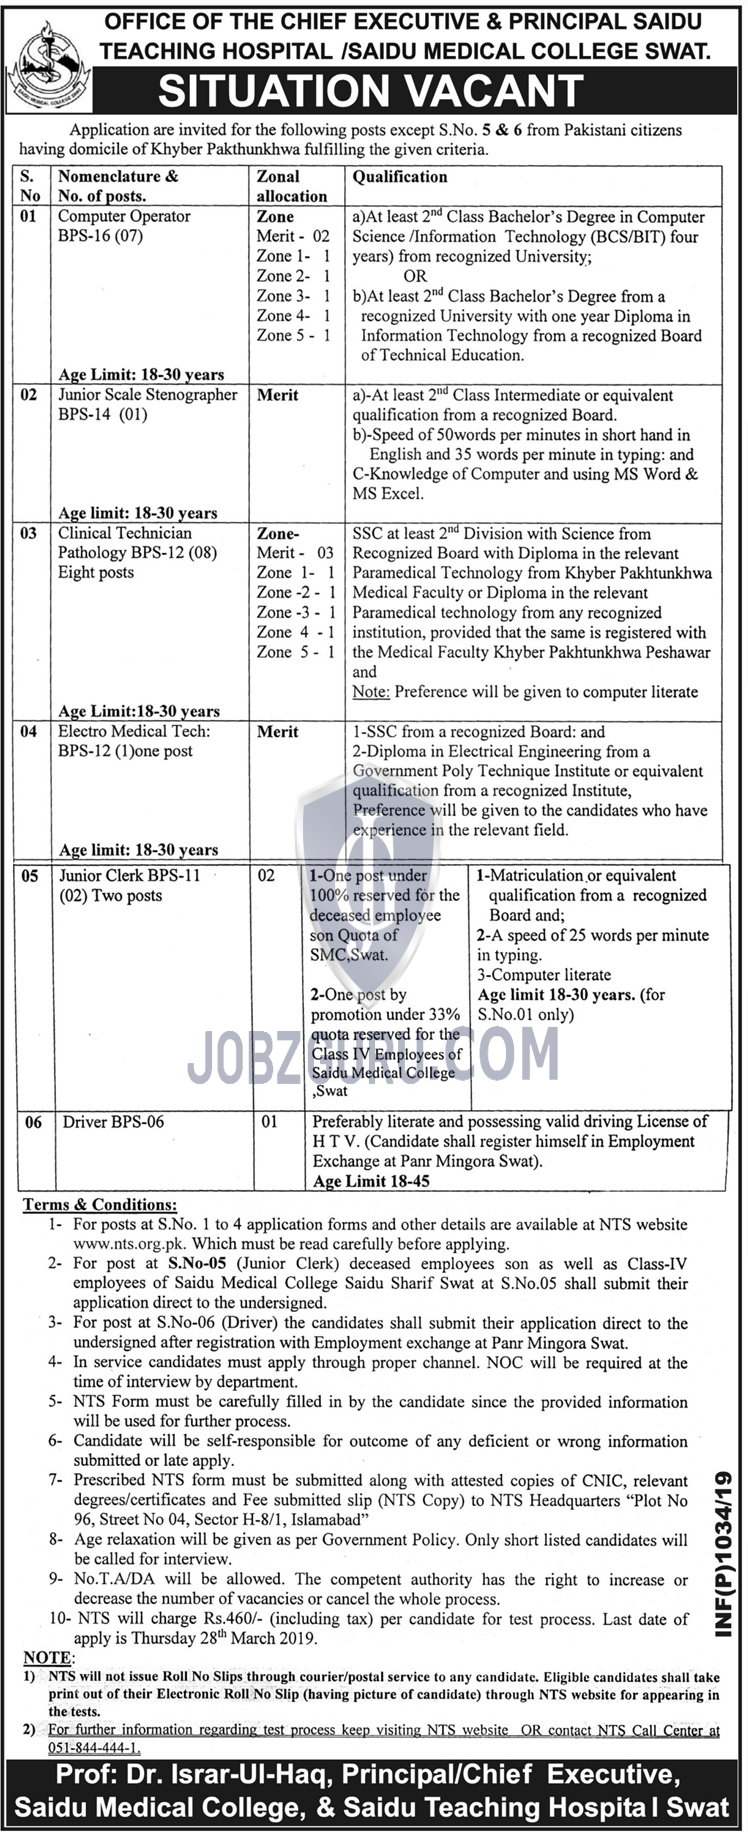 Saidu Teaching Hospital Medical College Swat Jobs 2019 Government of K